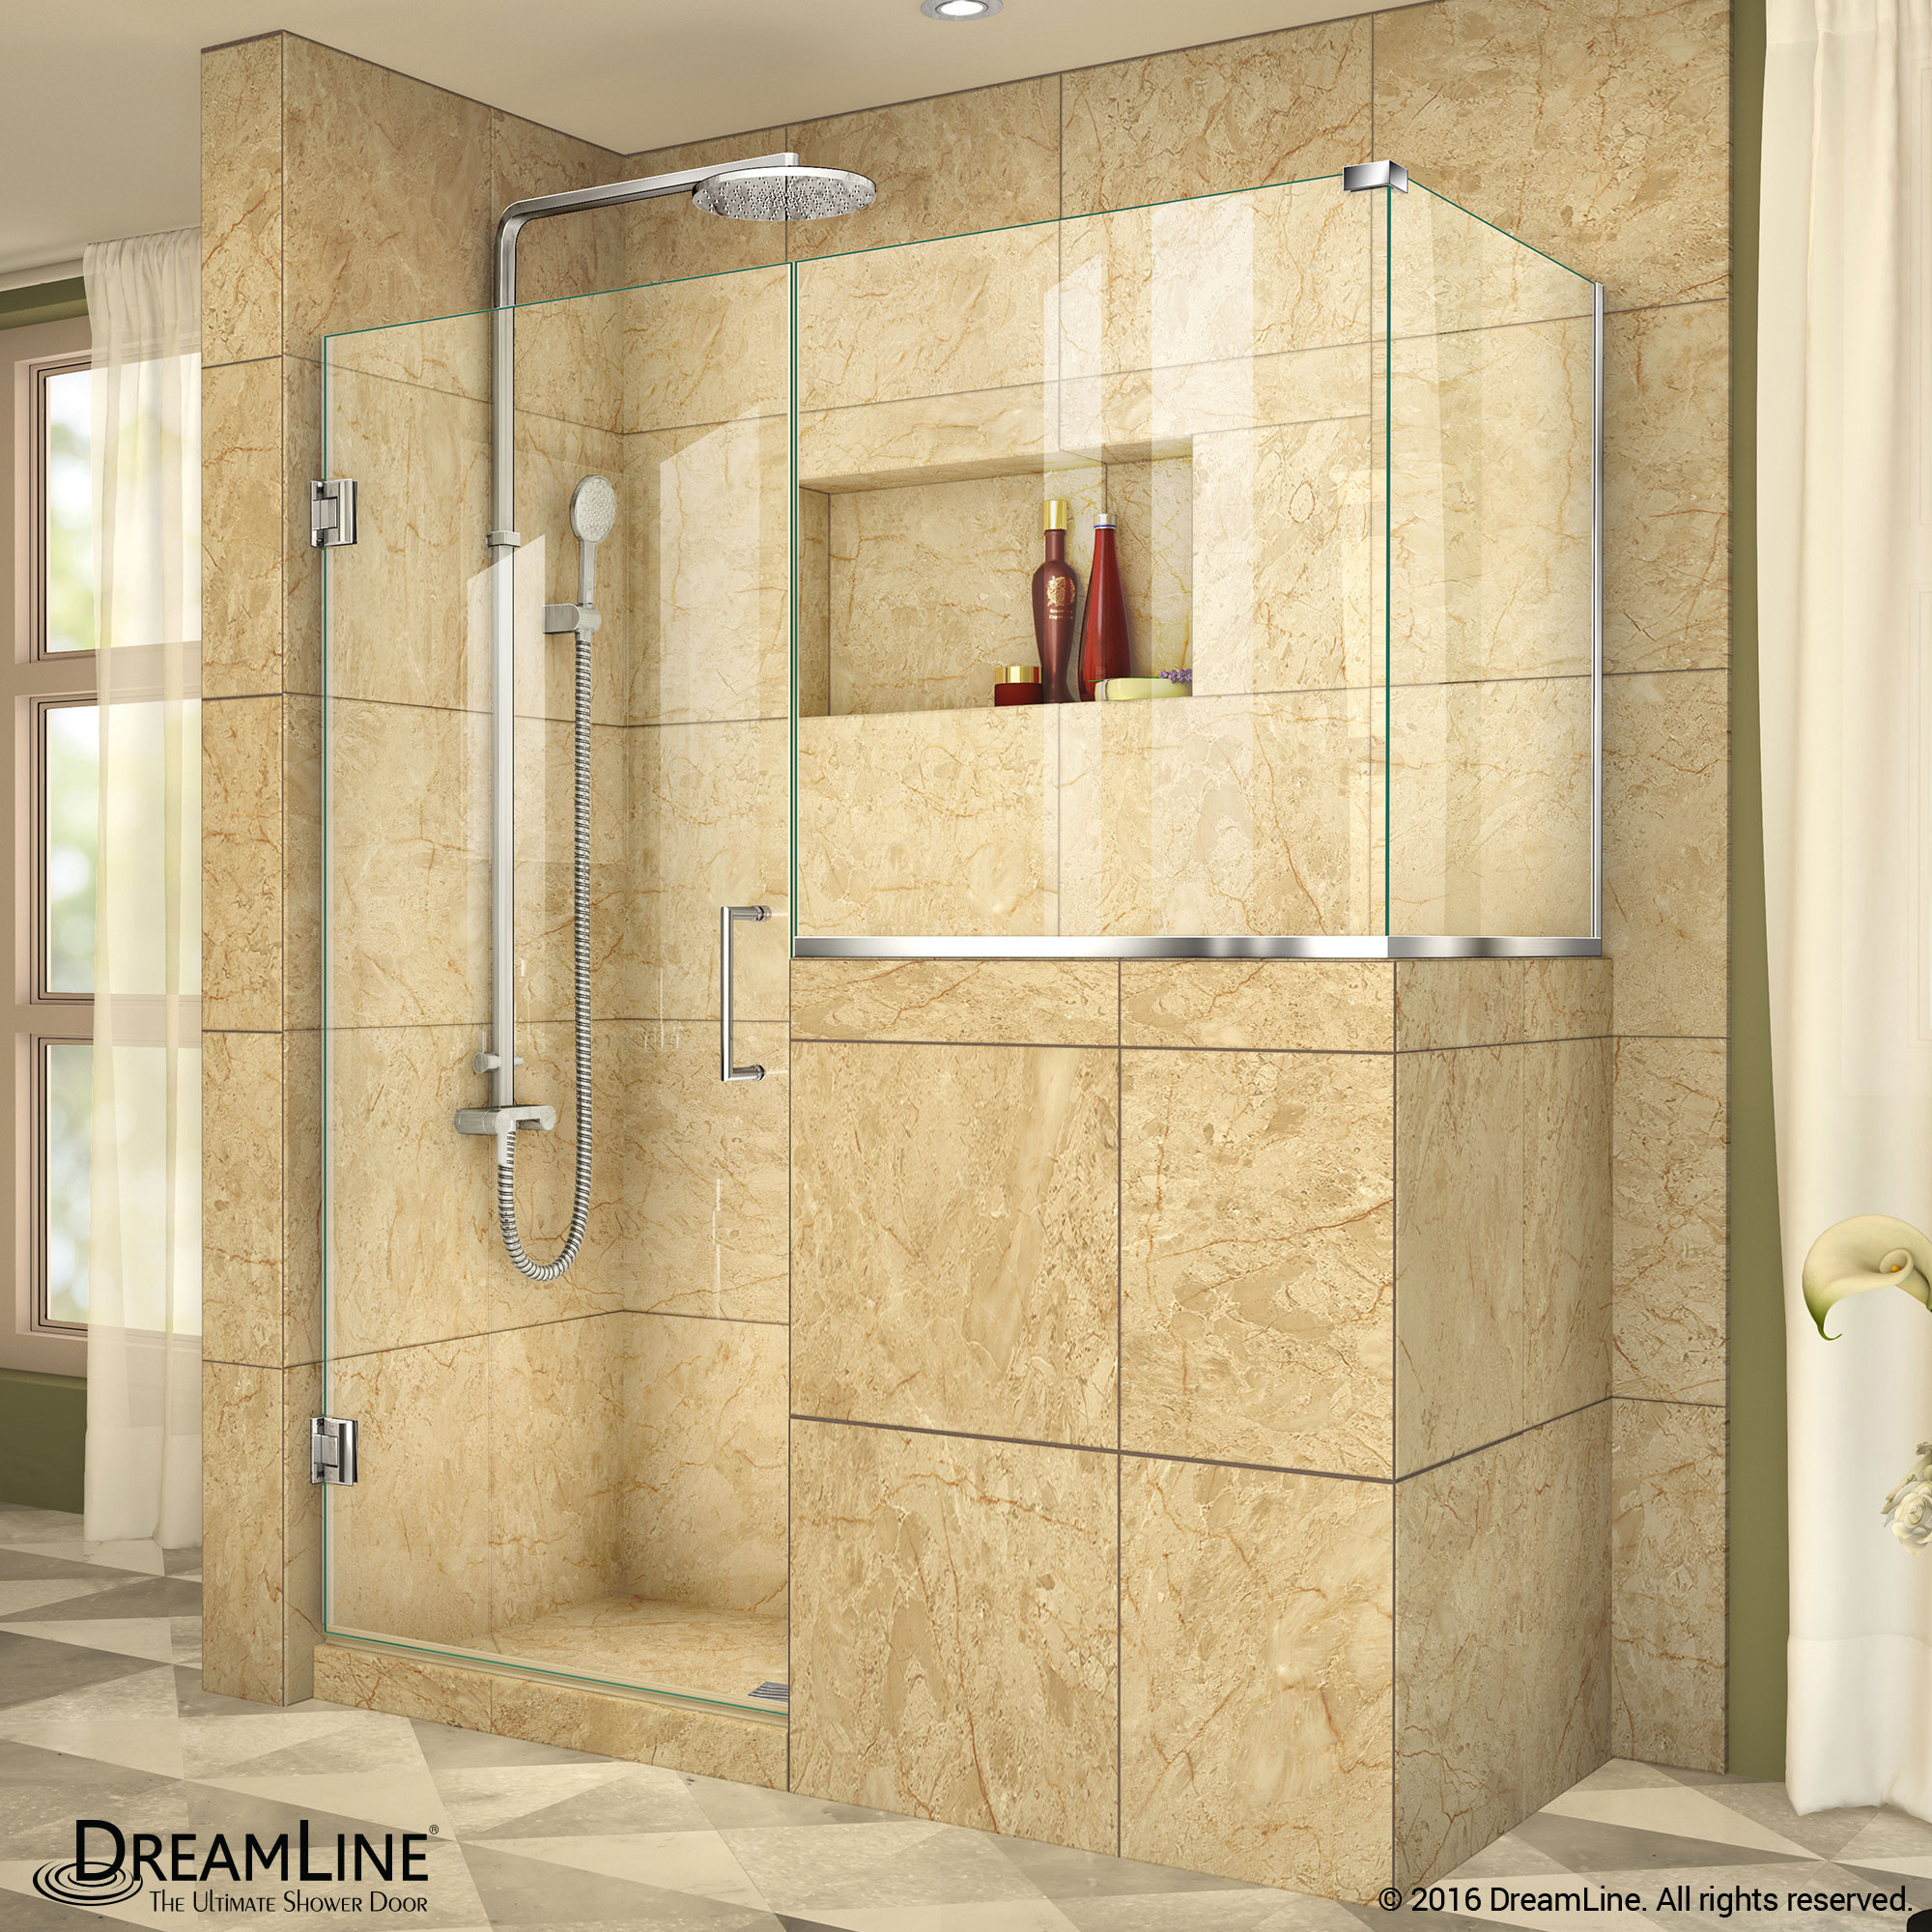 "DreamLine SHEN-2429303430-01 Unidoor Plus 59 x 30.375 x 72"" Hinged Shower Enclosure In Chrome Finish"